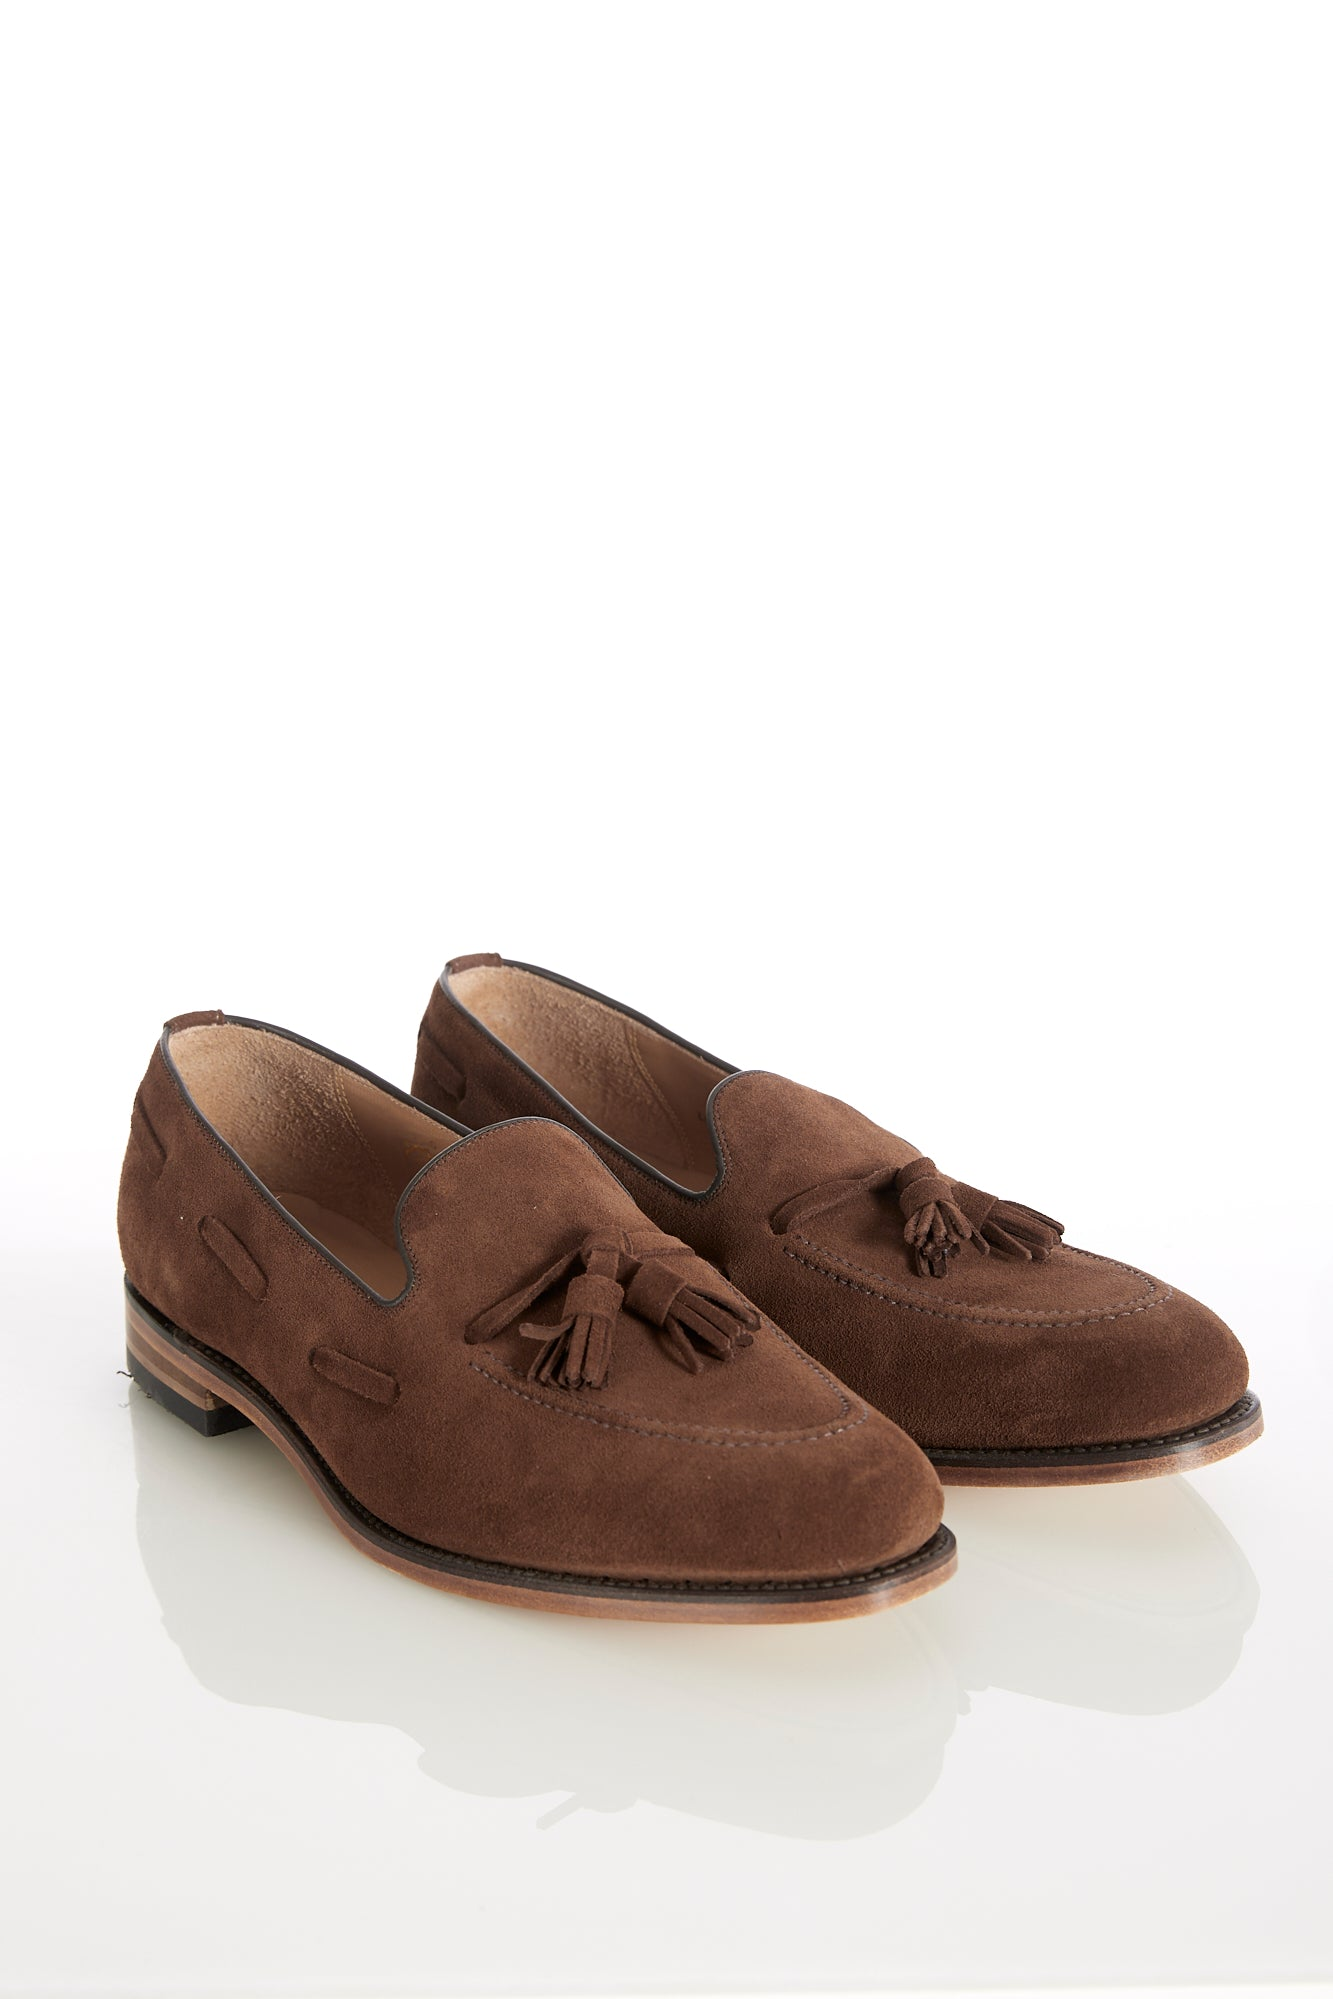 Loake 'Lincoln' Fox Suede Tassel Loafer